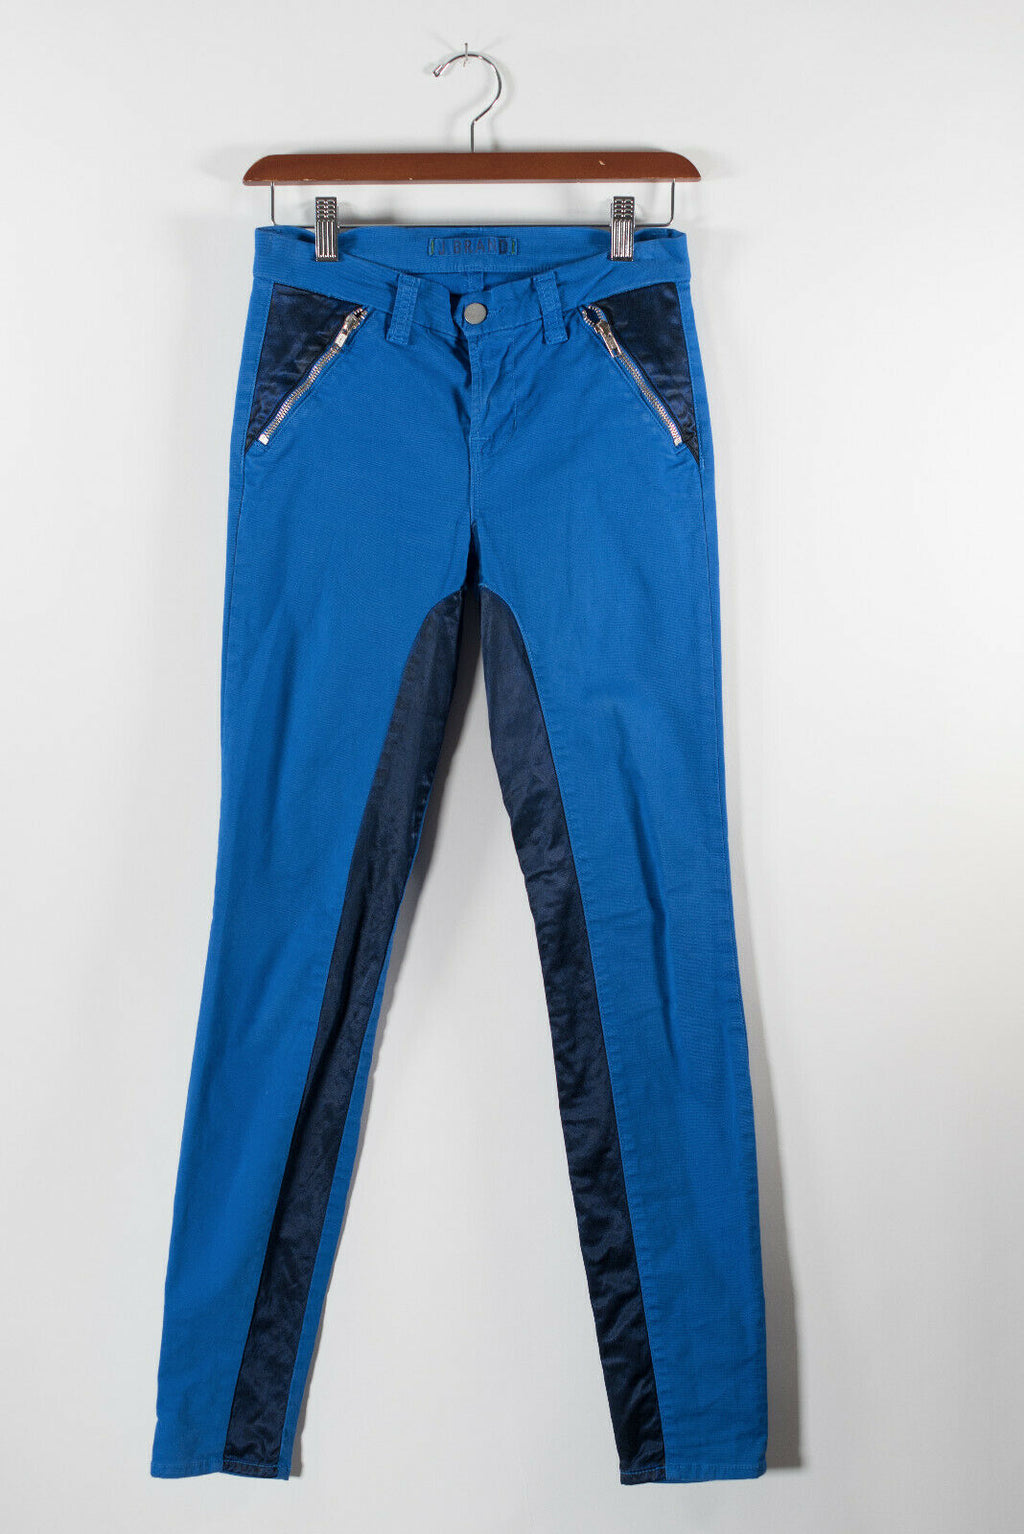 J Brand Womens Size 25 Navy Blue Jeans Zipper Pocket Pants 2 Tone Bright Skinny